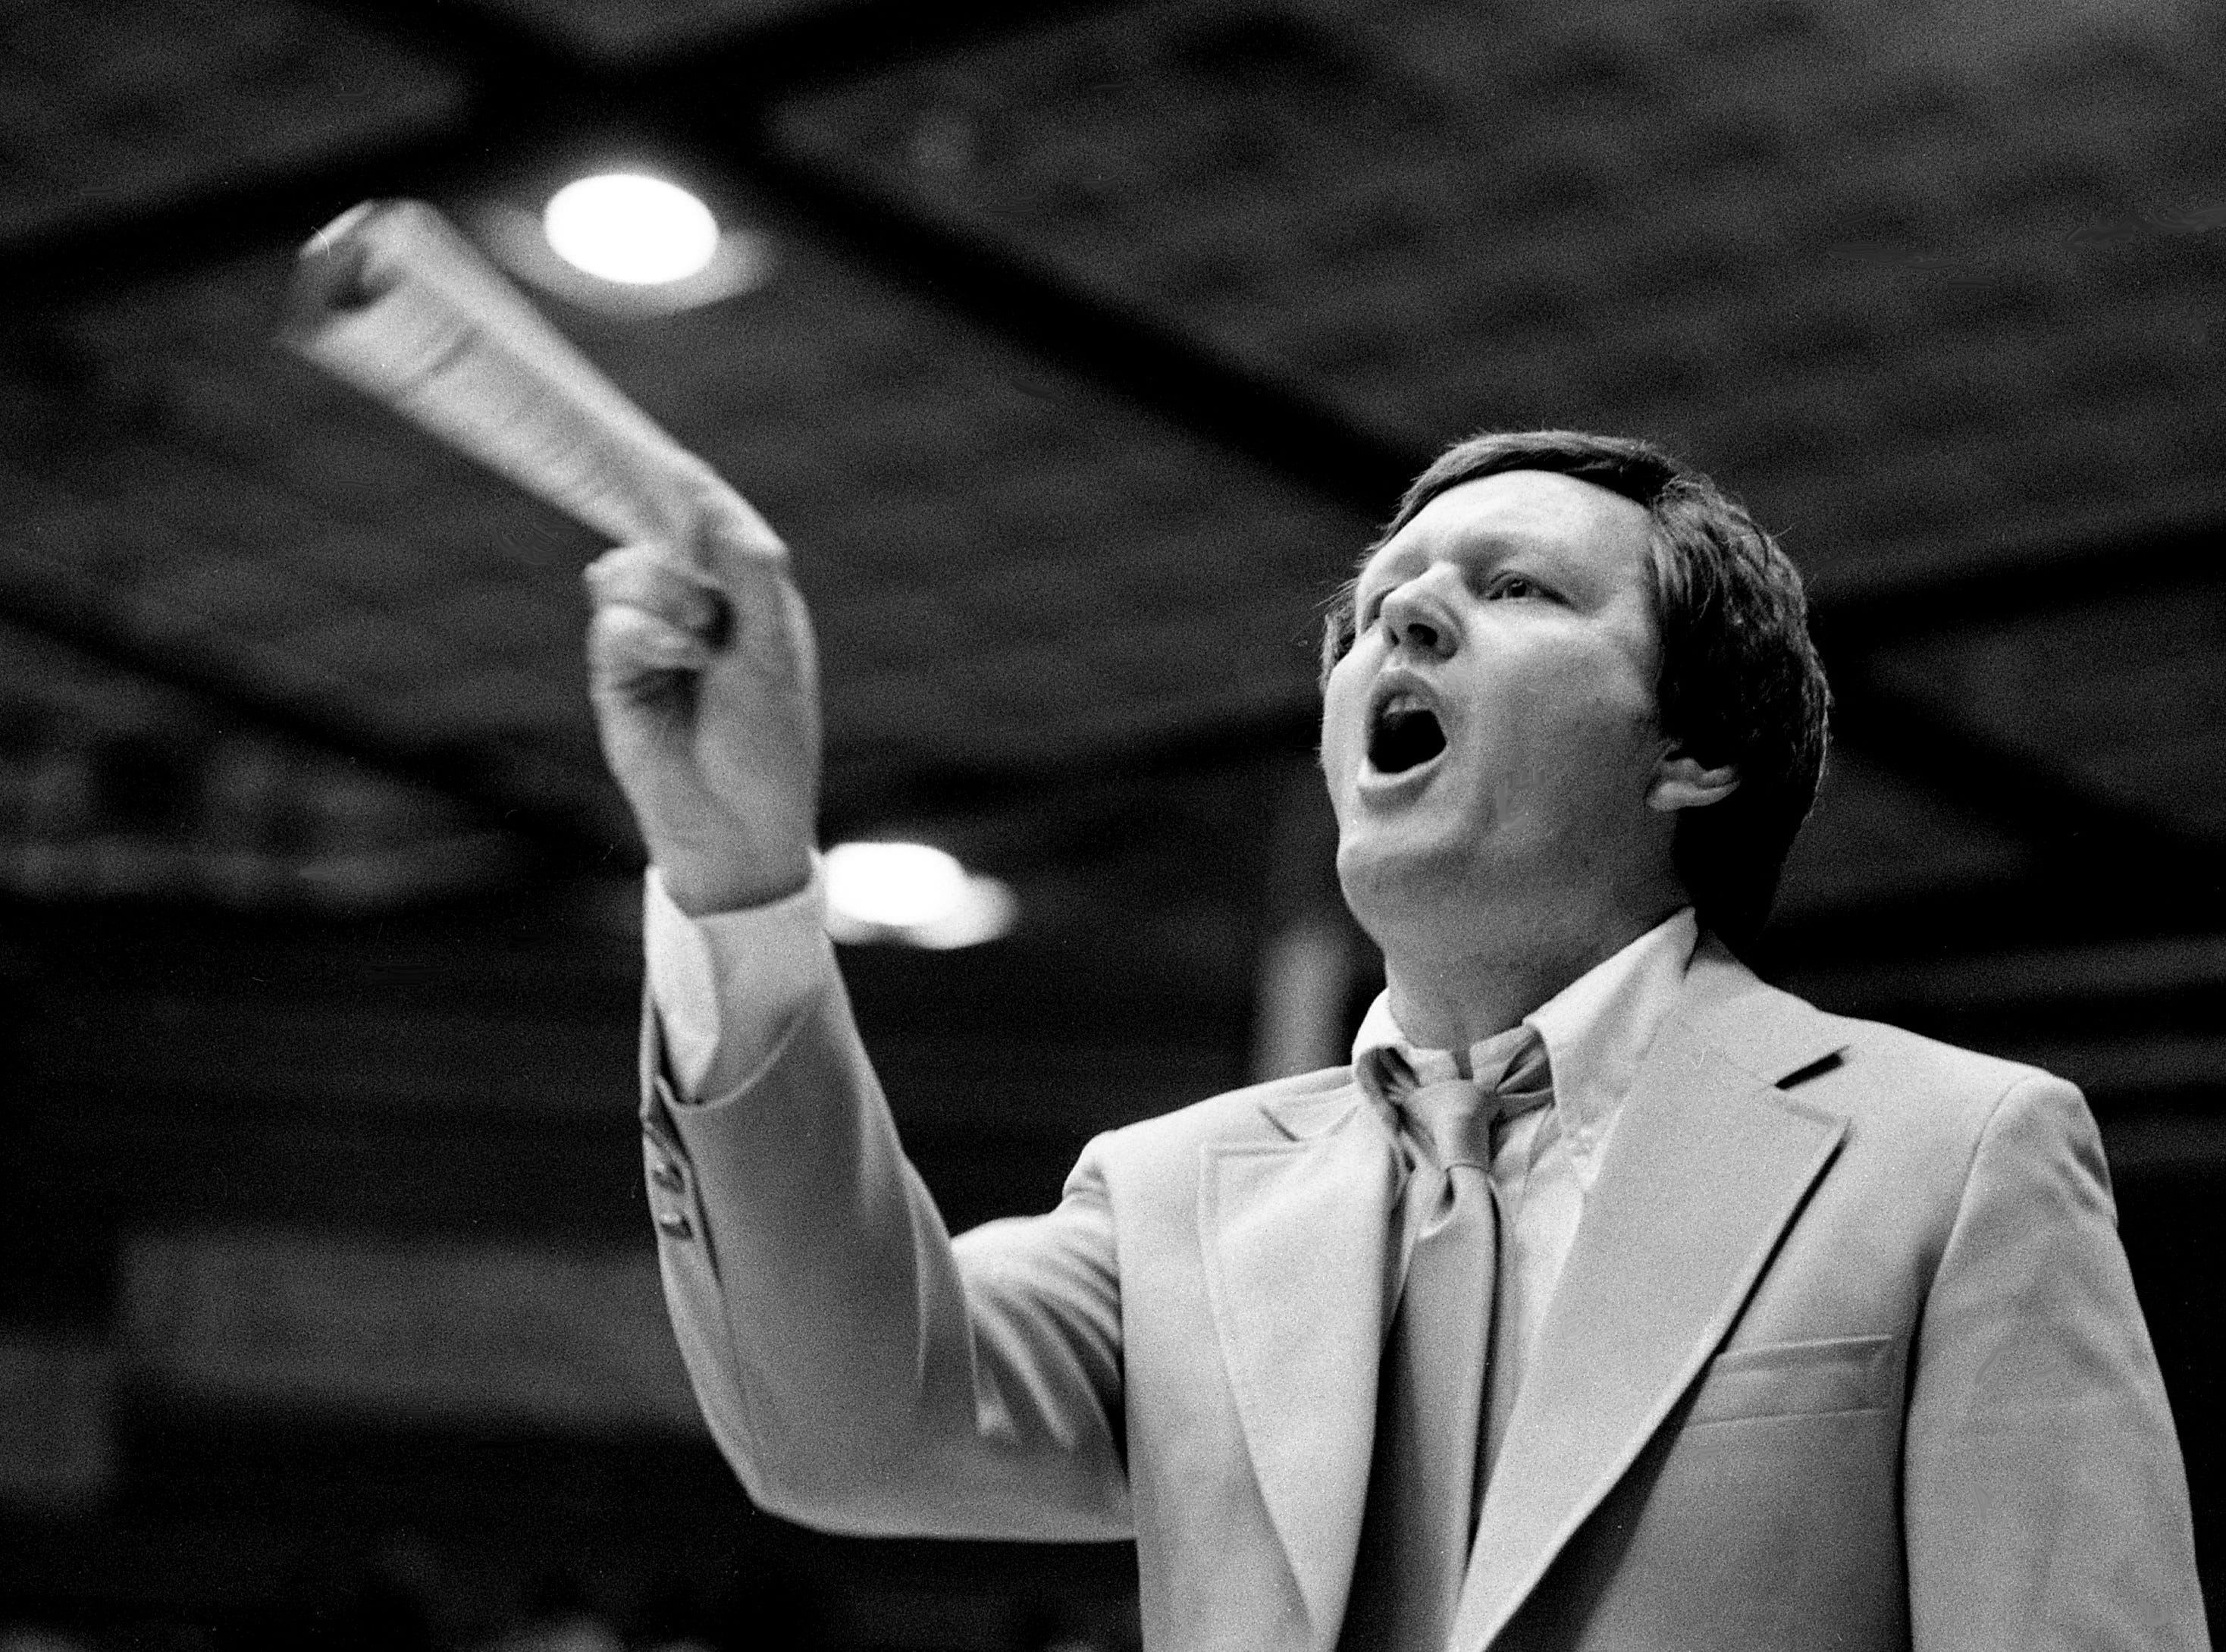 Middle Tennessee State head coach Jimmy Earle shouts encouragement to his players in their 81-76 victory over Western Kentucky in the final regular season game for both teams at Murphy Center in Murfreesboro on Feb. 24, 1979.